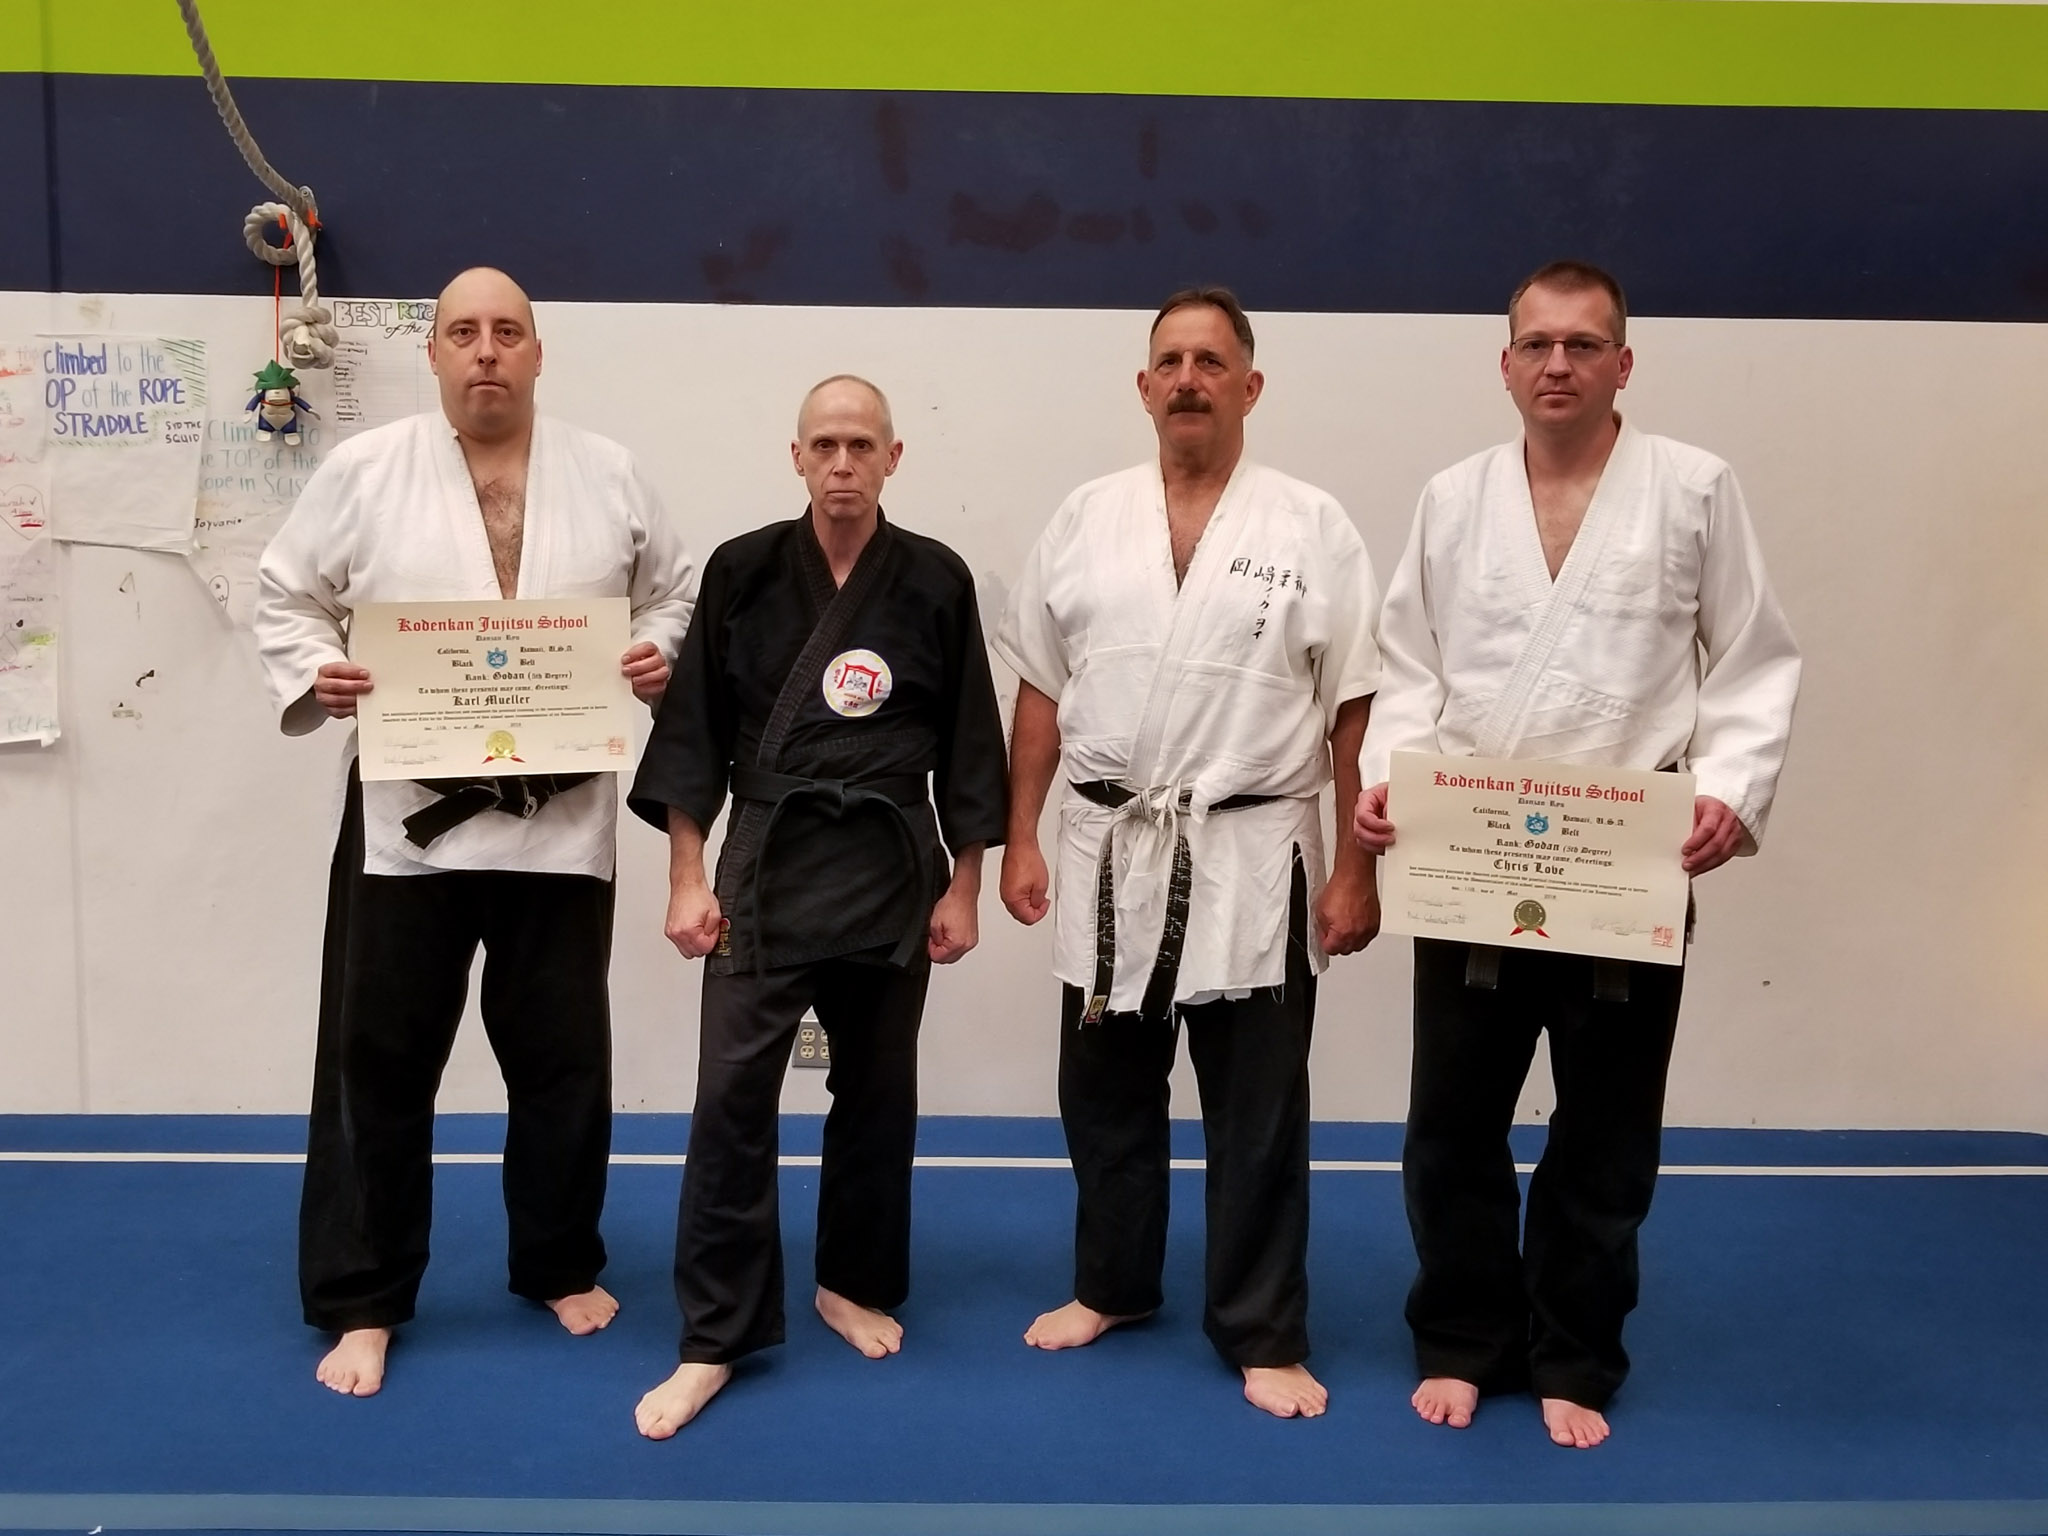 Profs. Tony Janovich and Clive Guth with Senseis Karl Mueller and Chris Love, on their promotions to 5th dan